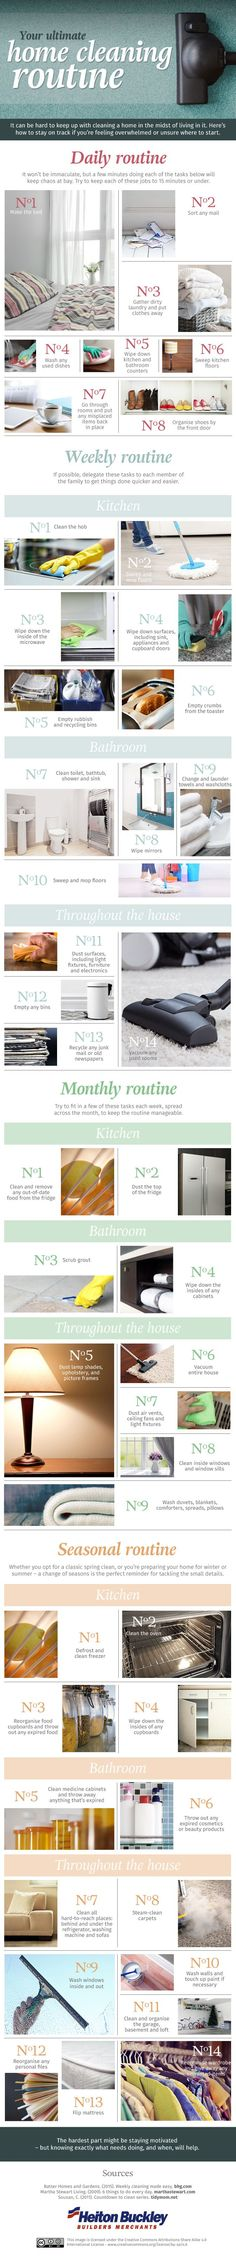 A great infographic that gives you ideas for what to do, and when, so that you have the perfect home cleaning routine to keep your house looking amazing.